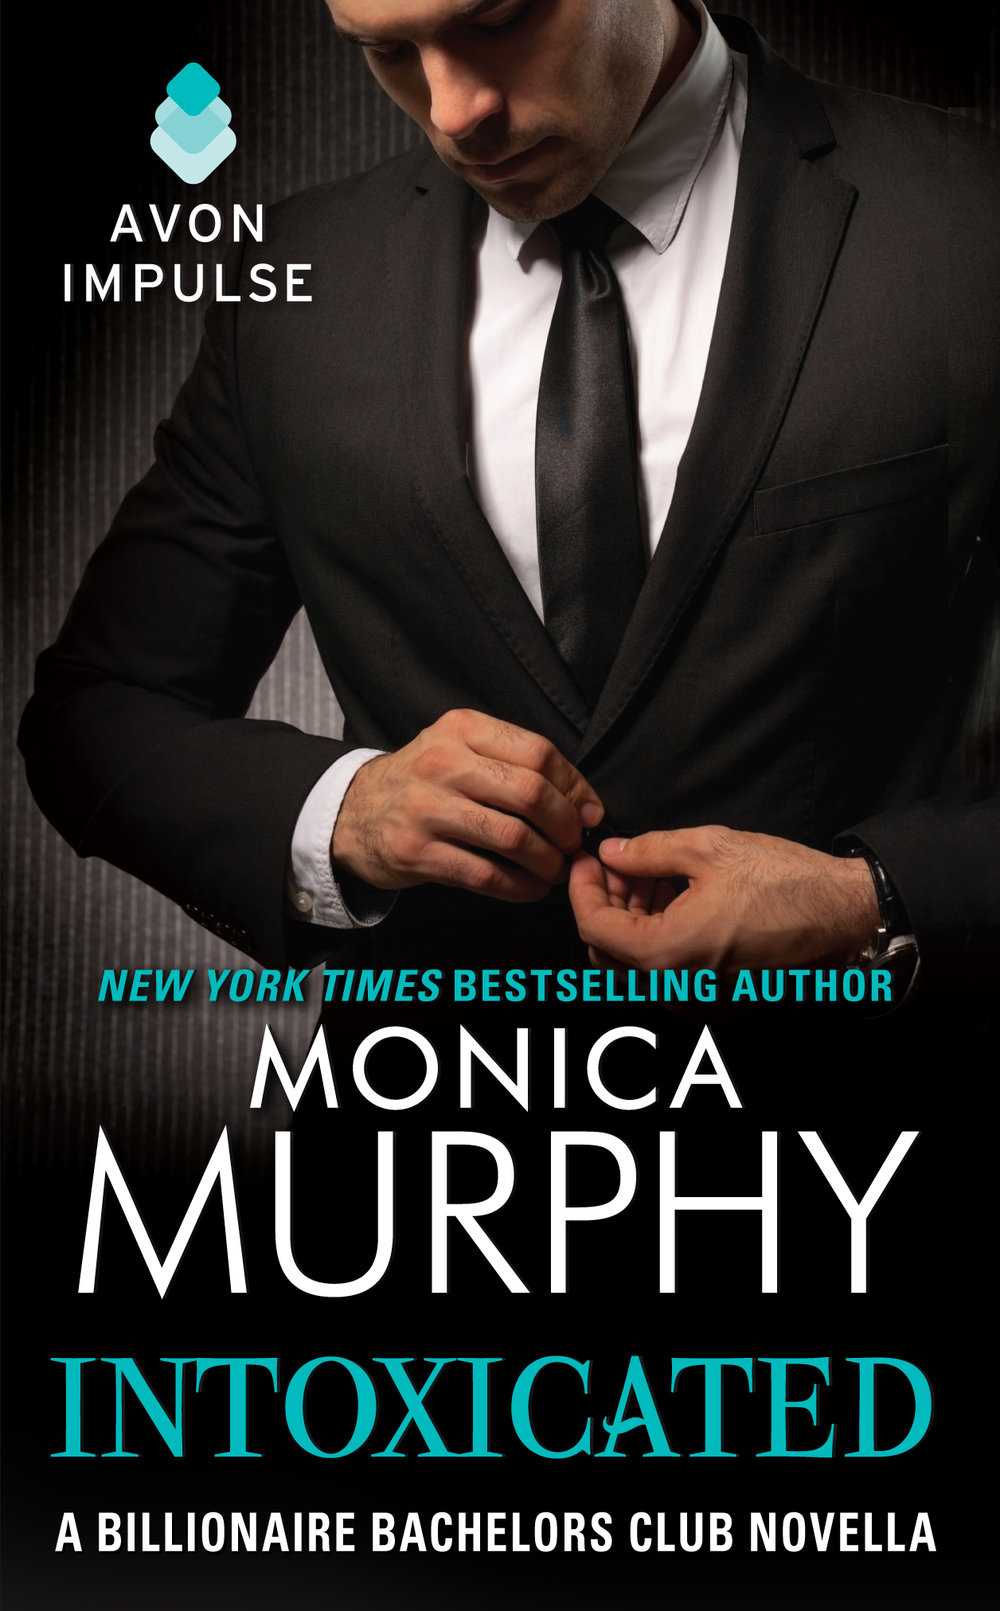 Billionaire Bachelors Club 4.0 Intoxicated Monica Murphy.jpg